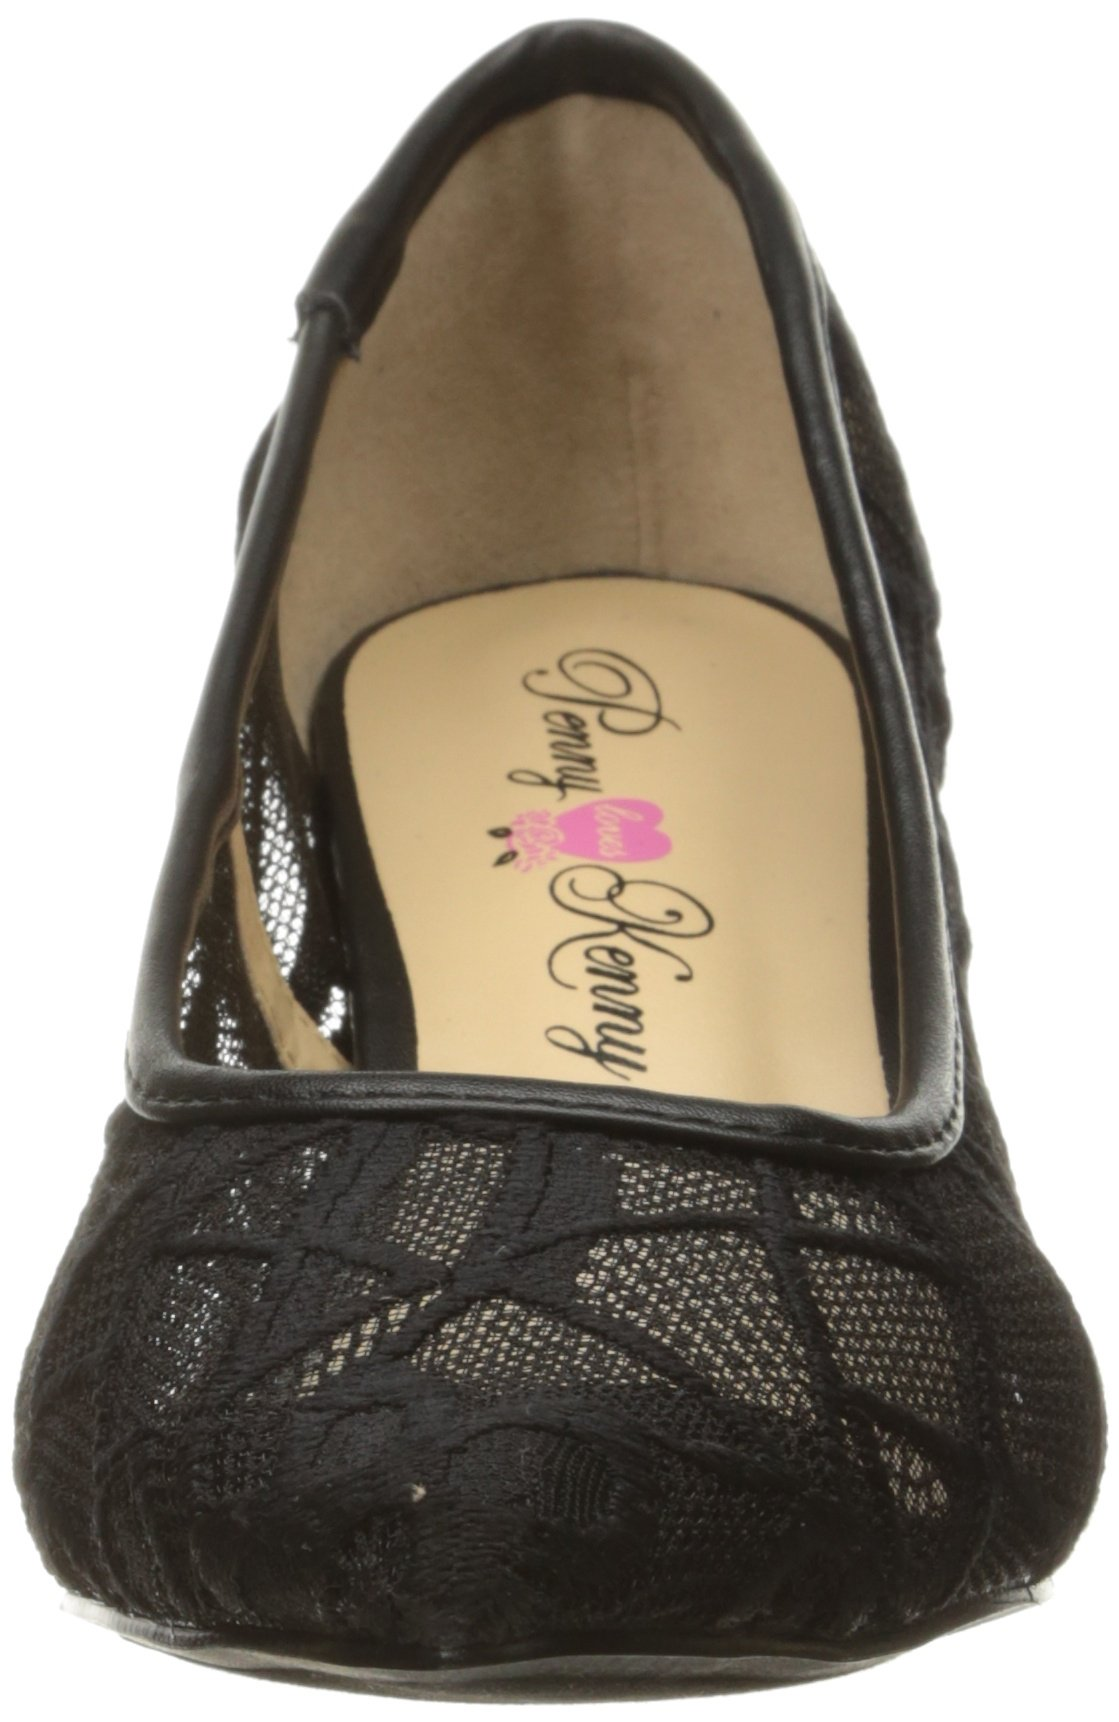 Penny Loves Kenny Women's Union Dress Pump, Black, 7.5 M US by Penny Loves Kenny (Image #4)